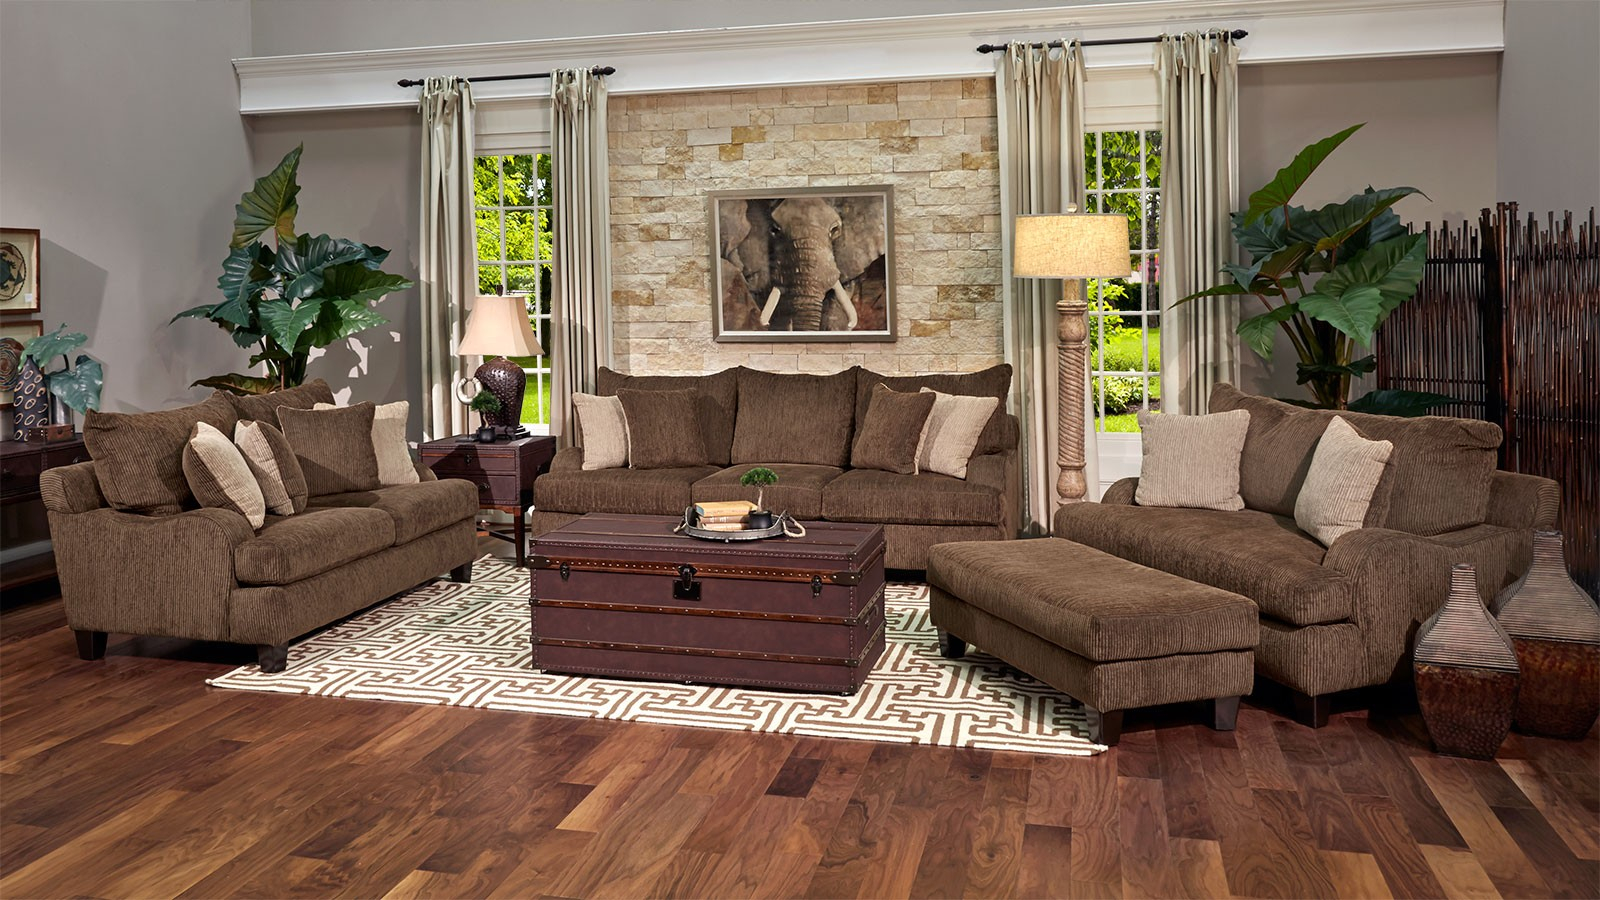 Living Room Furniture Sets Clearance Tips For Buying New Living within Living Room Set Clearance